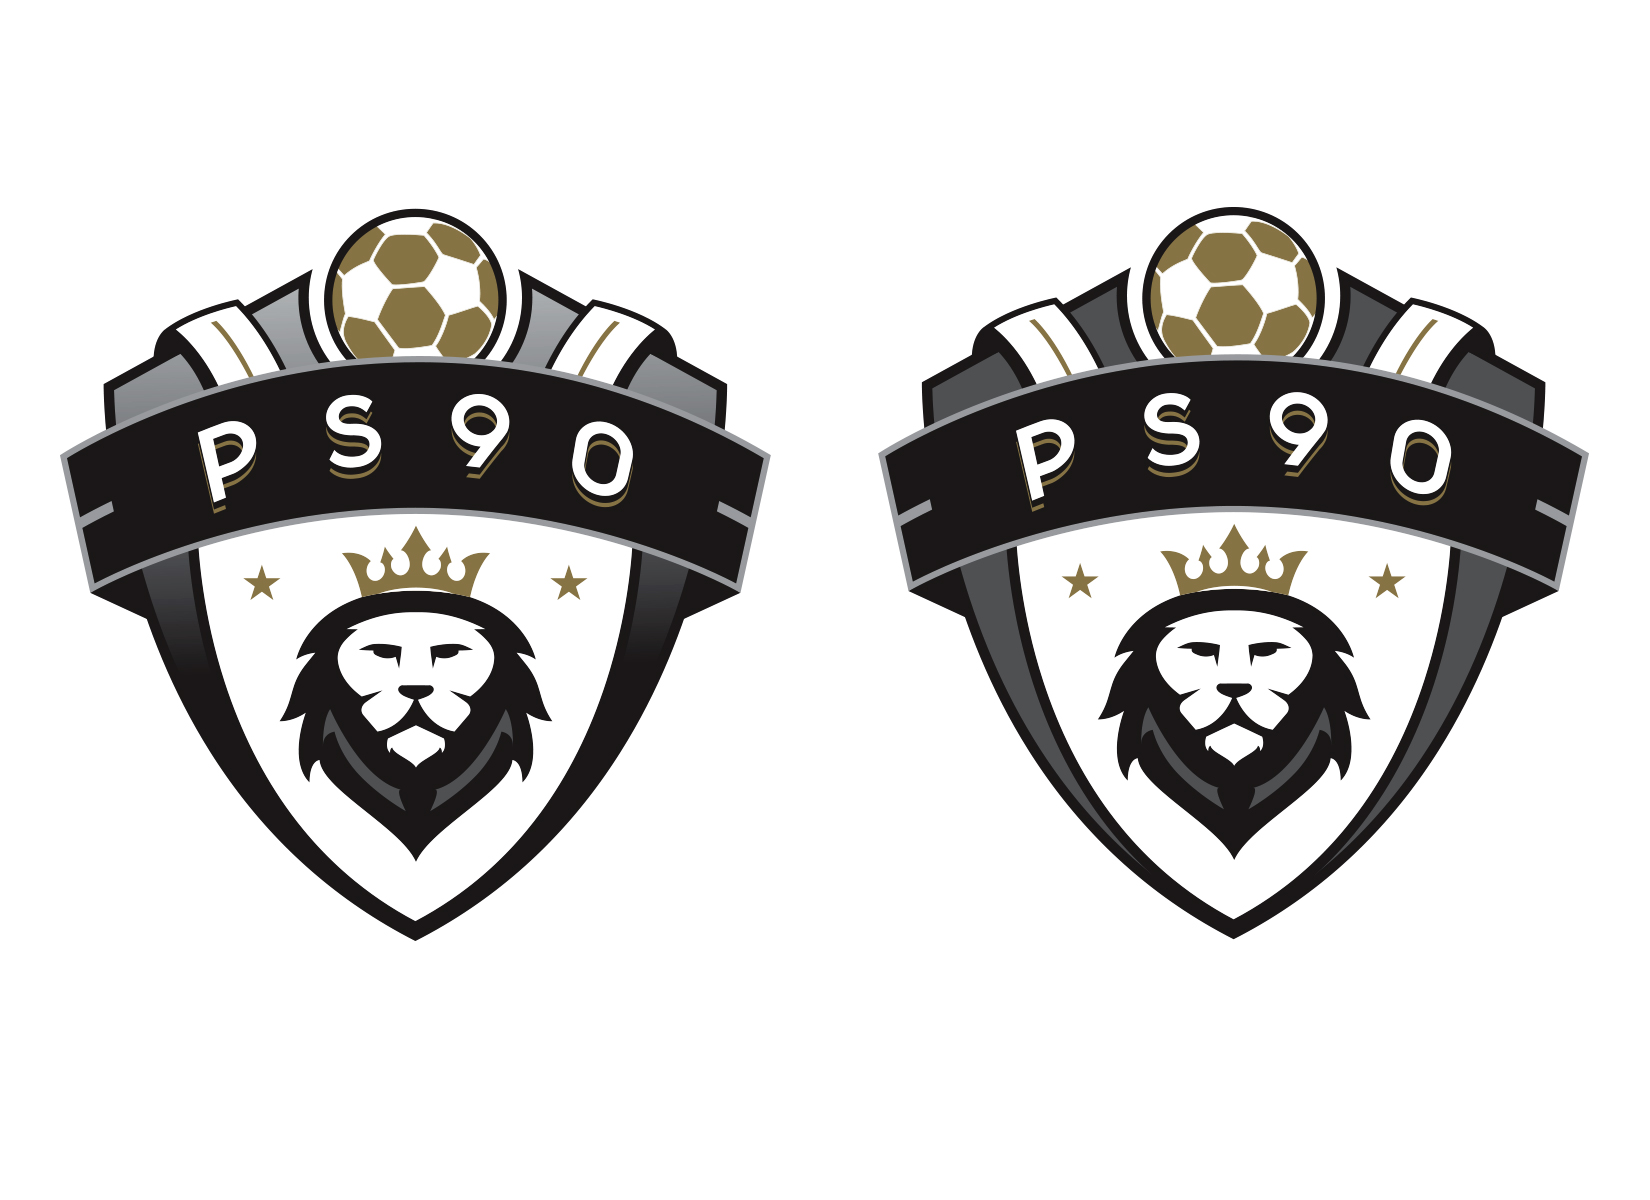 custom-soccer-crest-designs-for-ps90-soccer-4.jpg